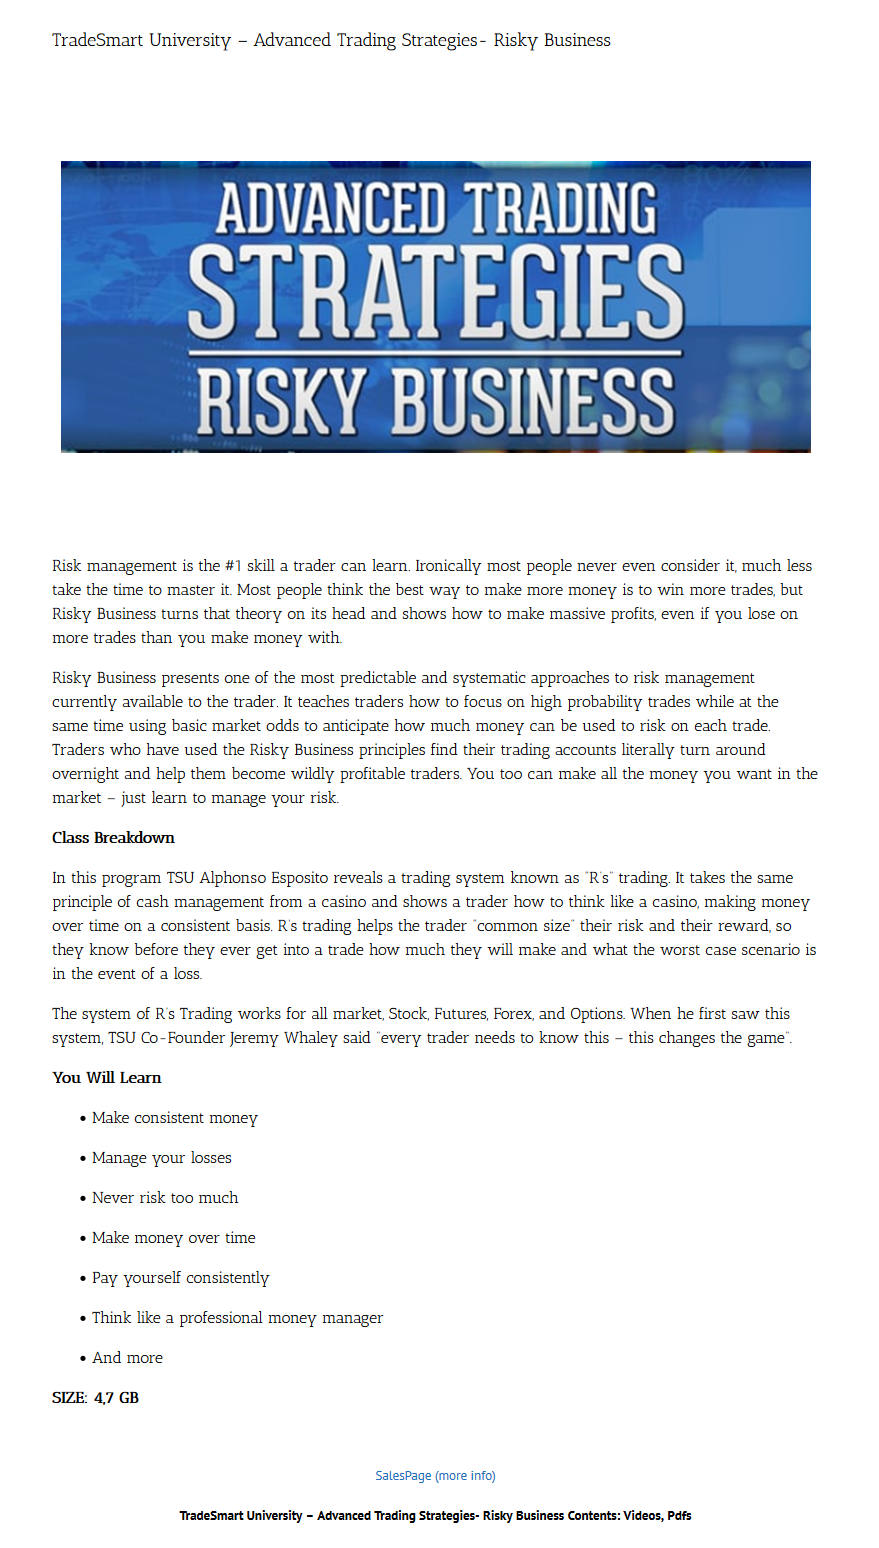 TradeSmart University - Advanced Trading Strategies- Risky Business